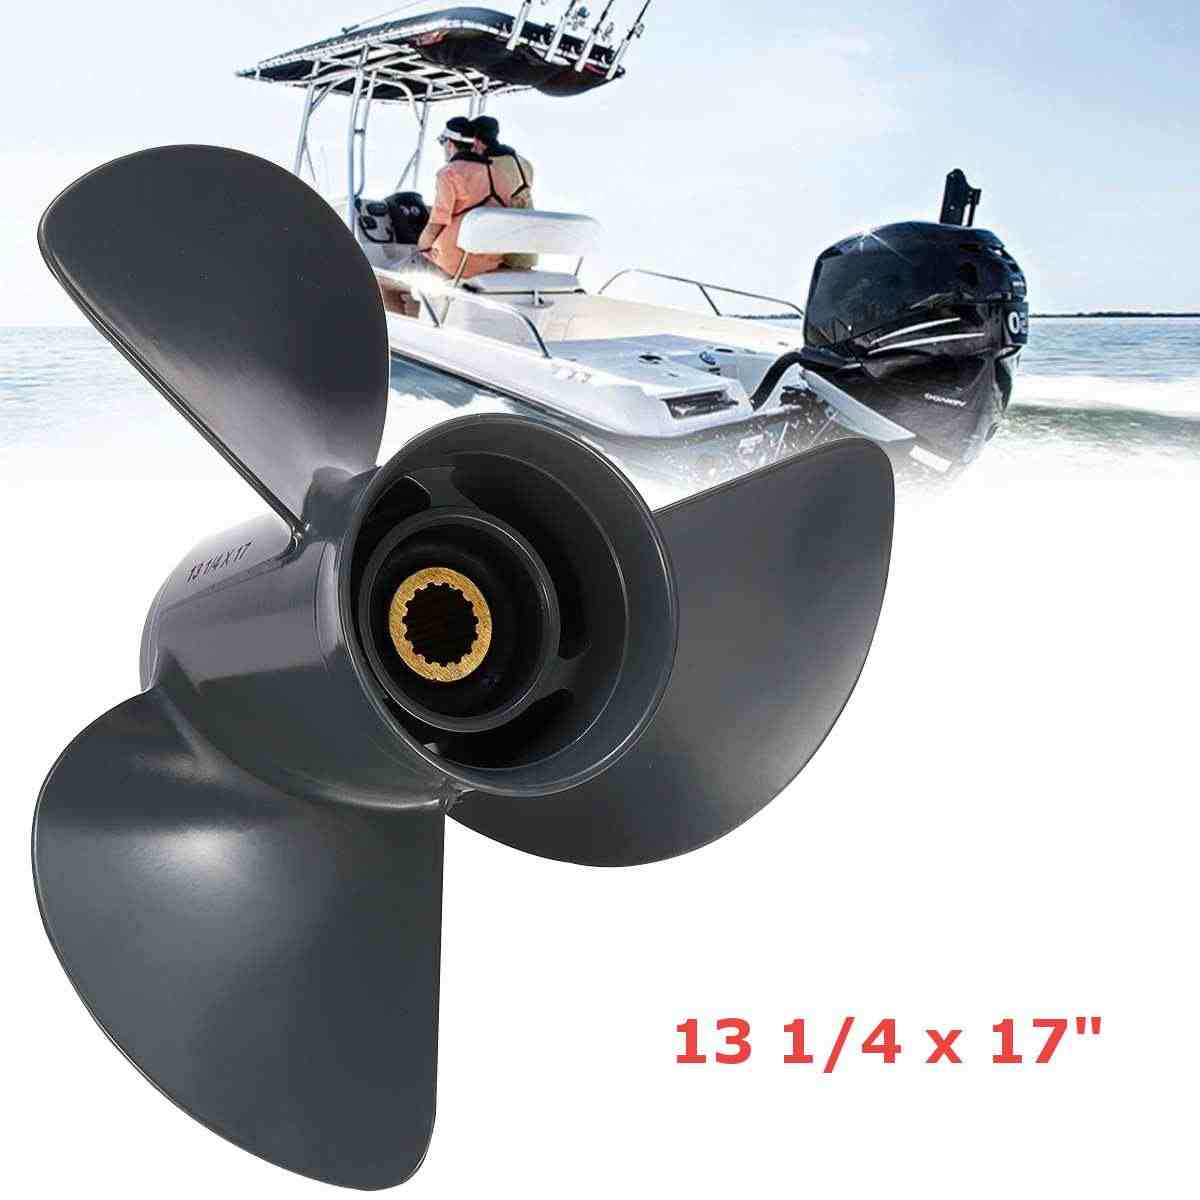 48-77344A45 13 1/4 x 17 Aluminum Alloy Outboard Propeller For Mercury  Mariner 70-150HP R Rotation 3 Blades 15 Spline Tooth